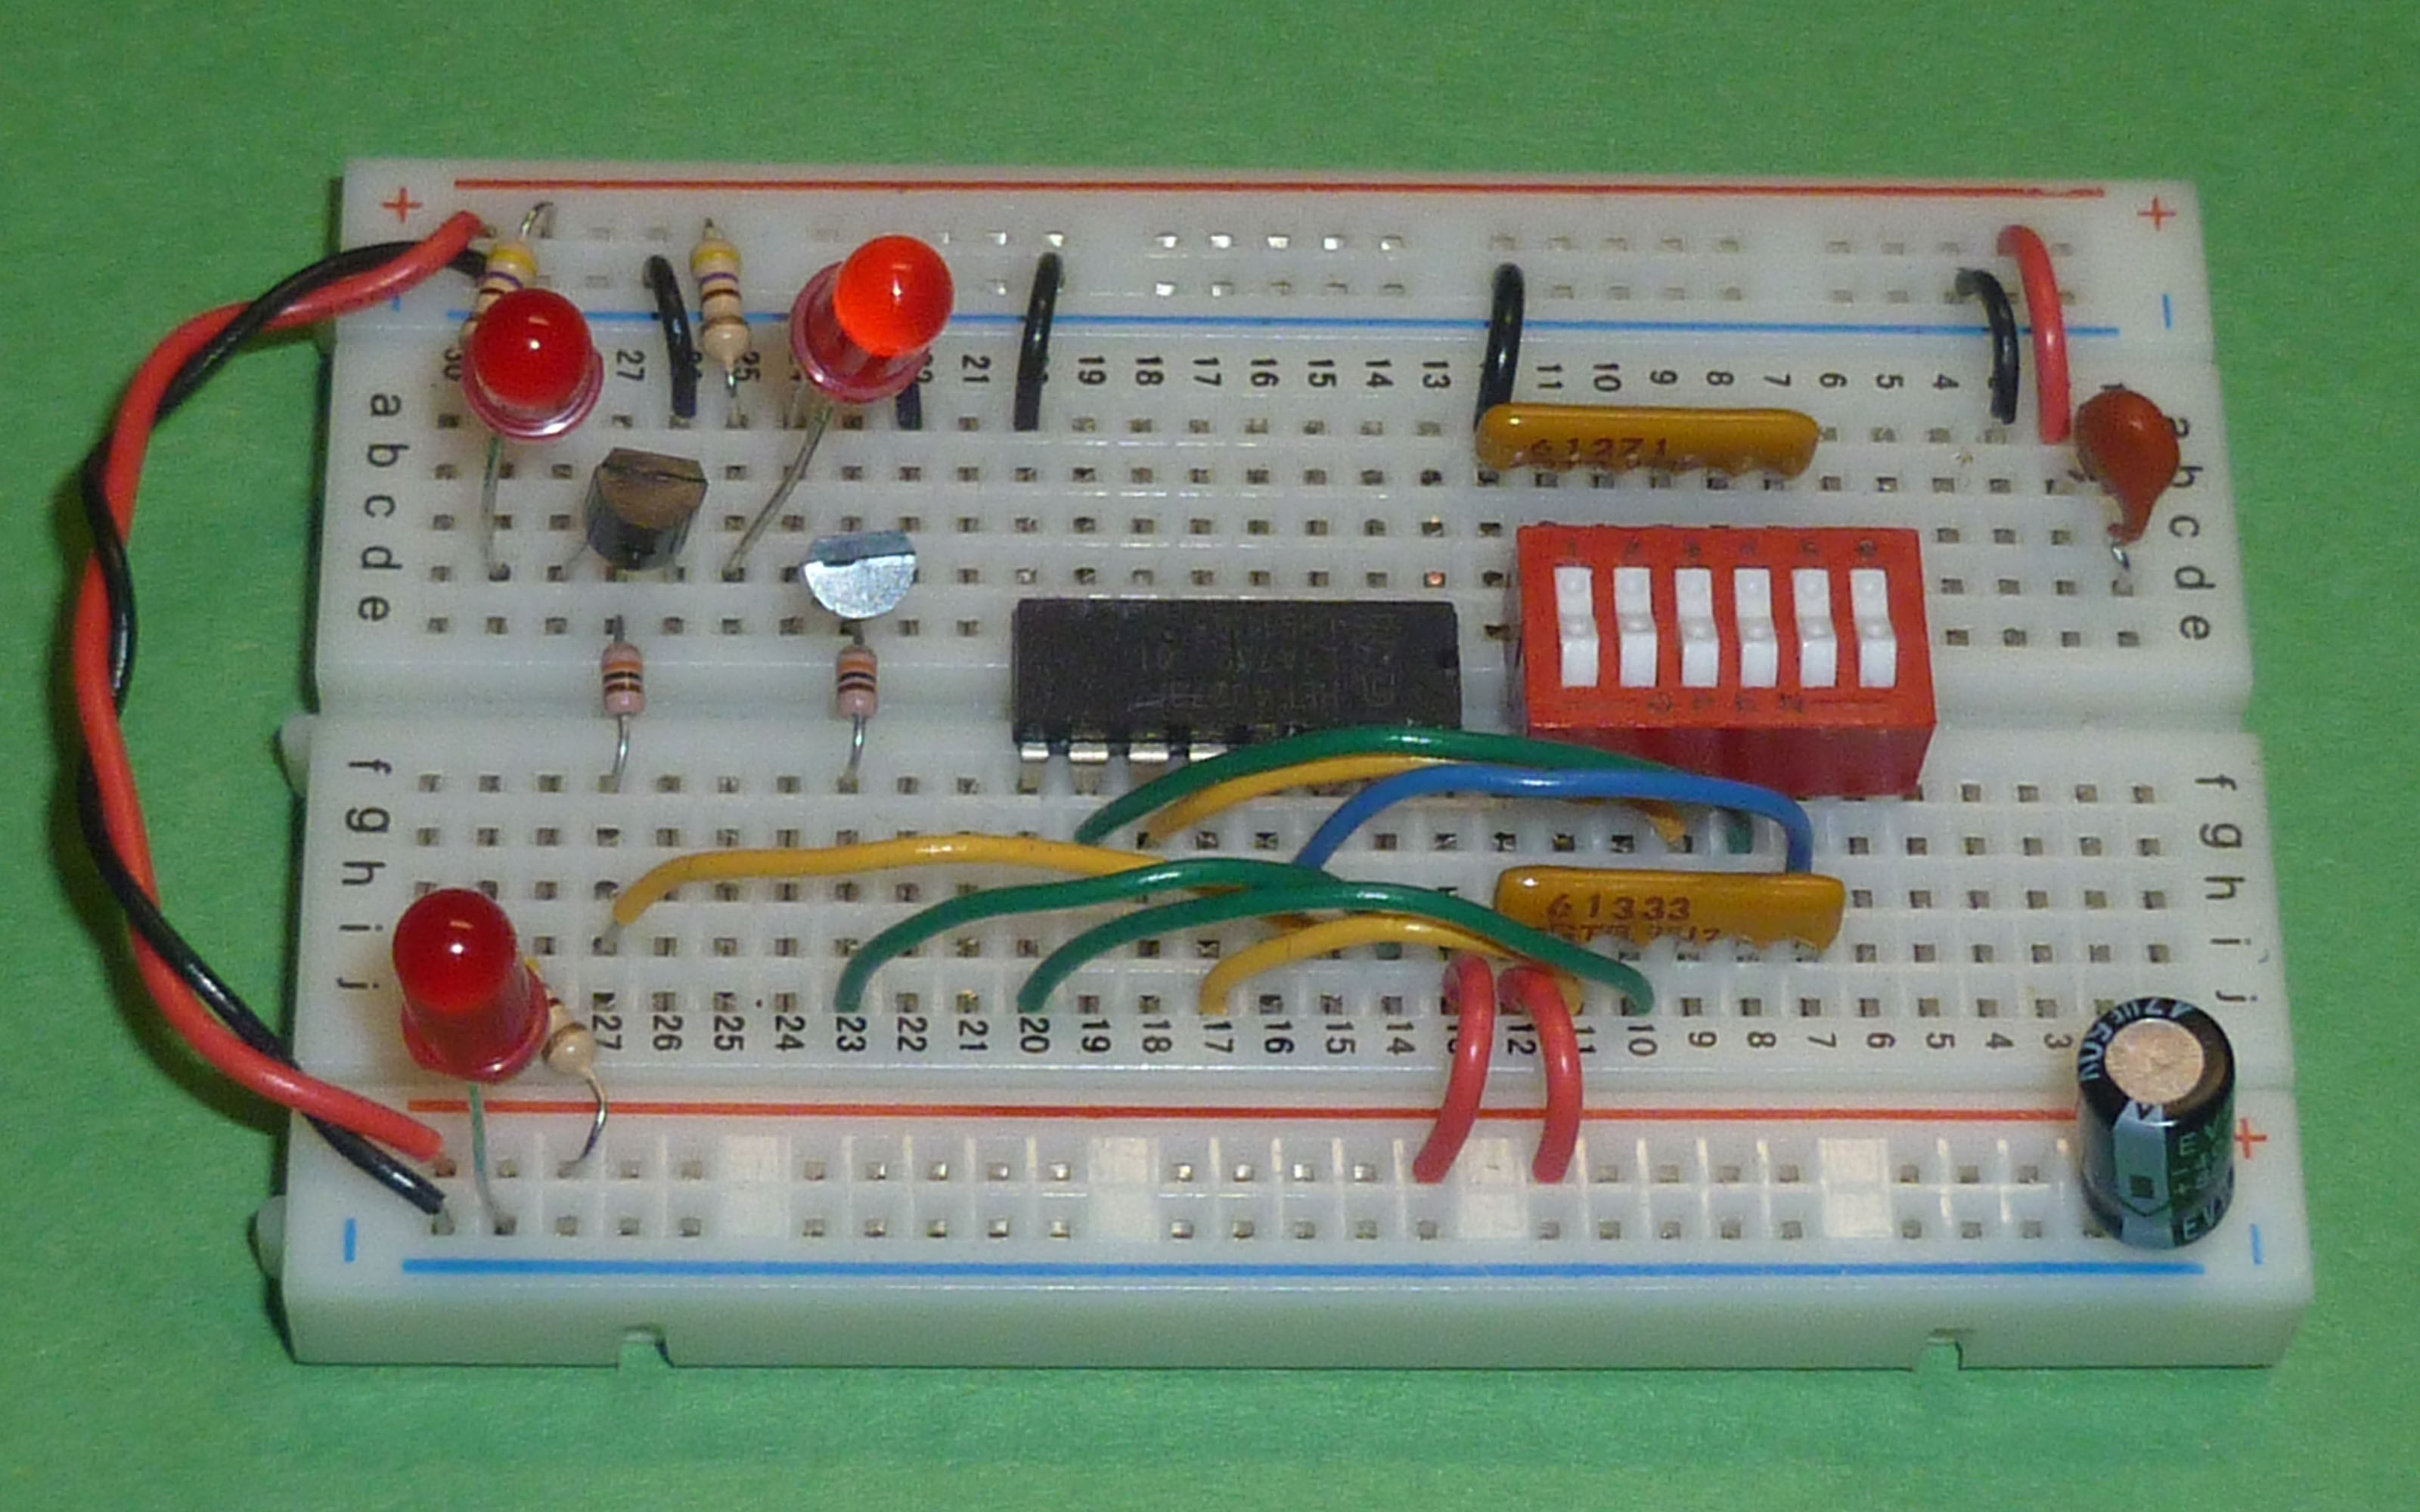 Csci 255 Breadboards Transistors And Gates Circuits Components Transistor As A Current Breadboard With